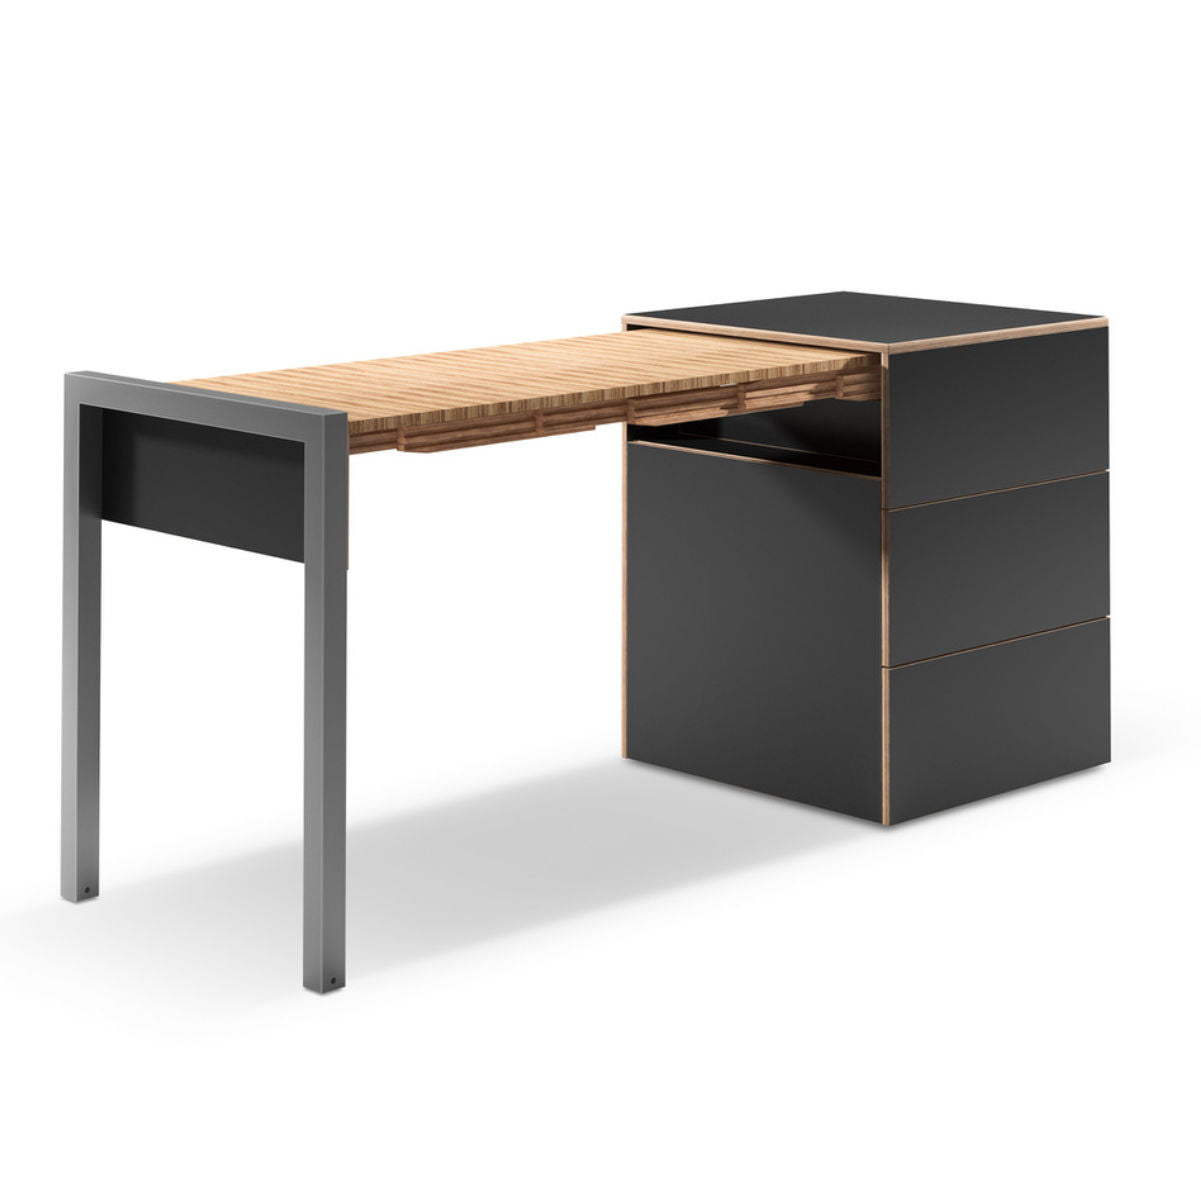 Alwin's Space Box Extendable Table Drawers , Super Matte Black-Beech Laminated Veneer